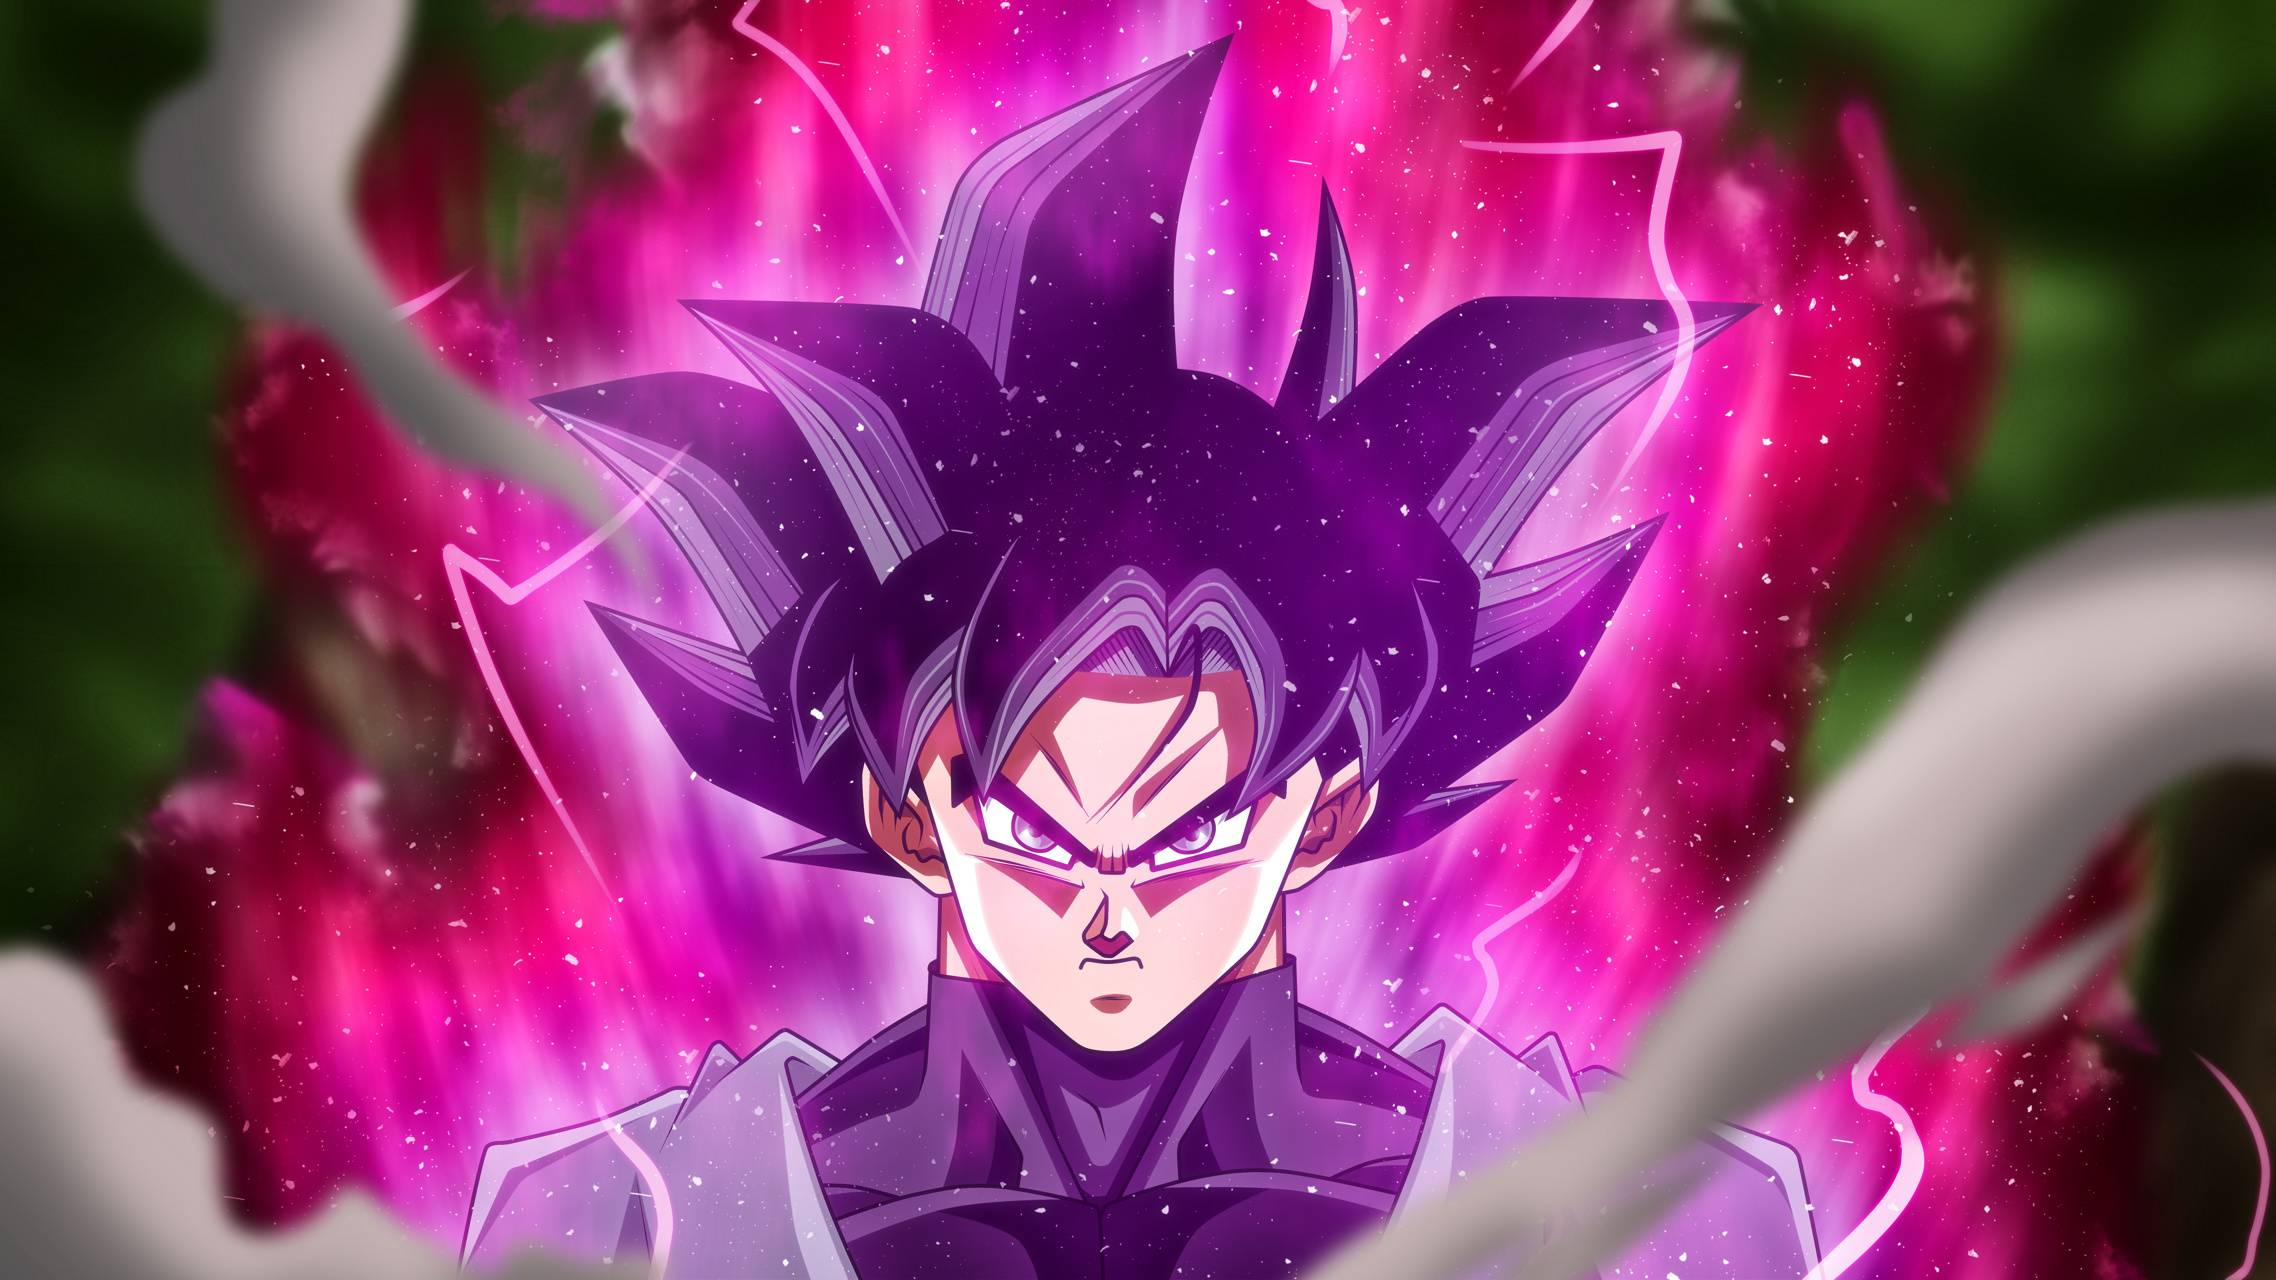 Goku Black Rose Wallpaper By Ahkioz E8 Free On Zedge